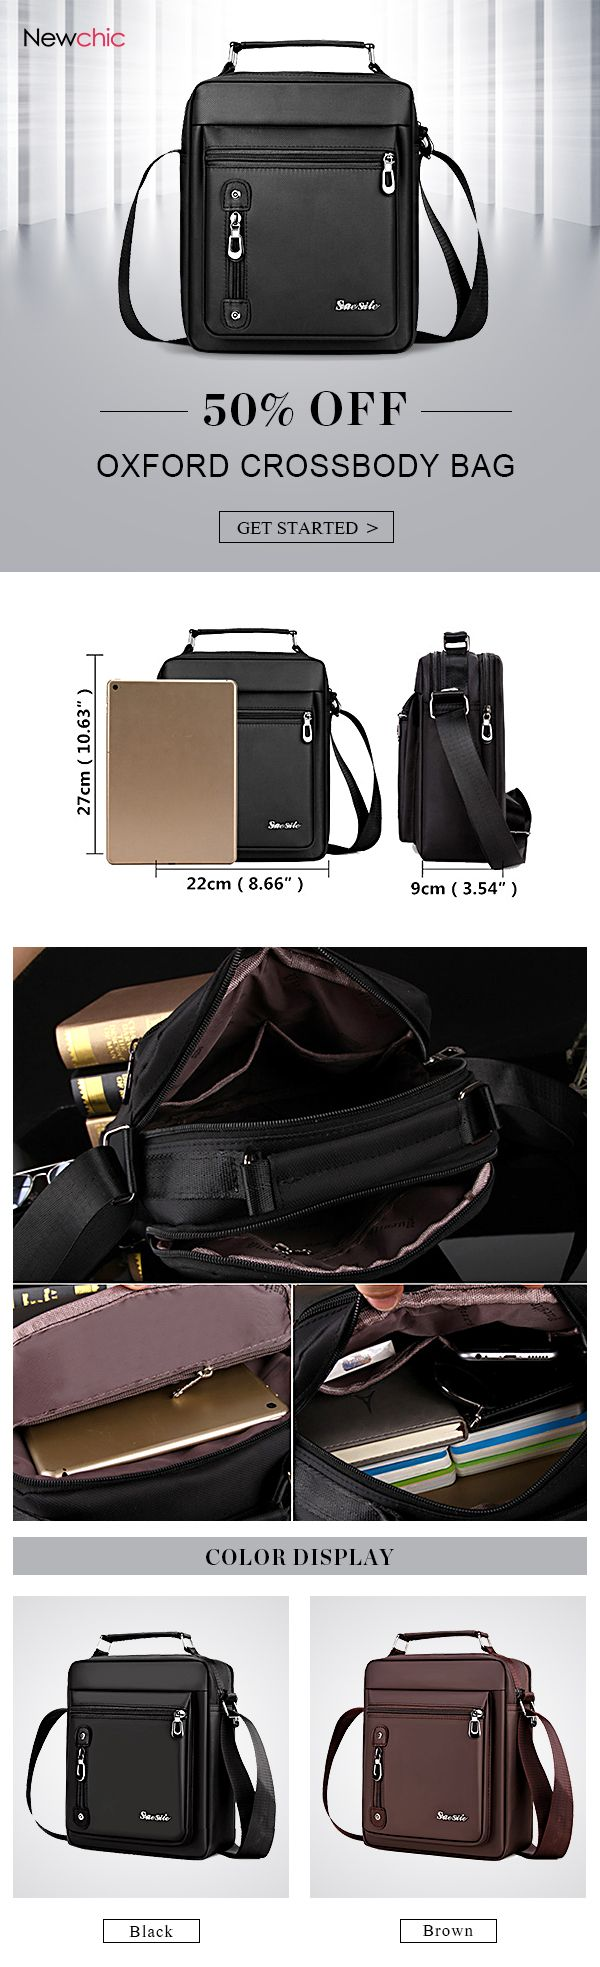 US$20.29 Oxford Vintage Casual Business Shoulder Crossbody Bag For Men#bags#business #vintagefashion